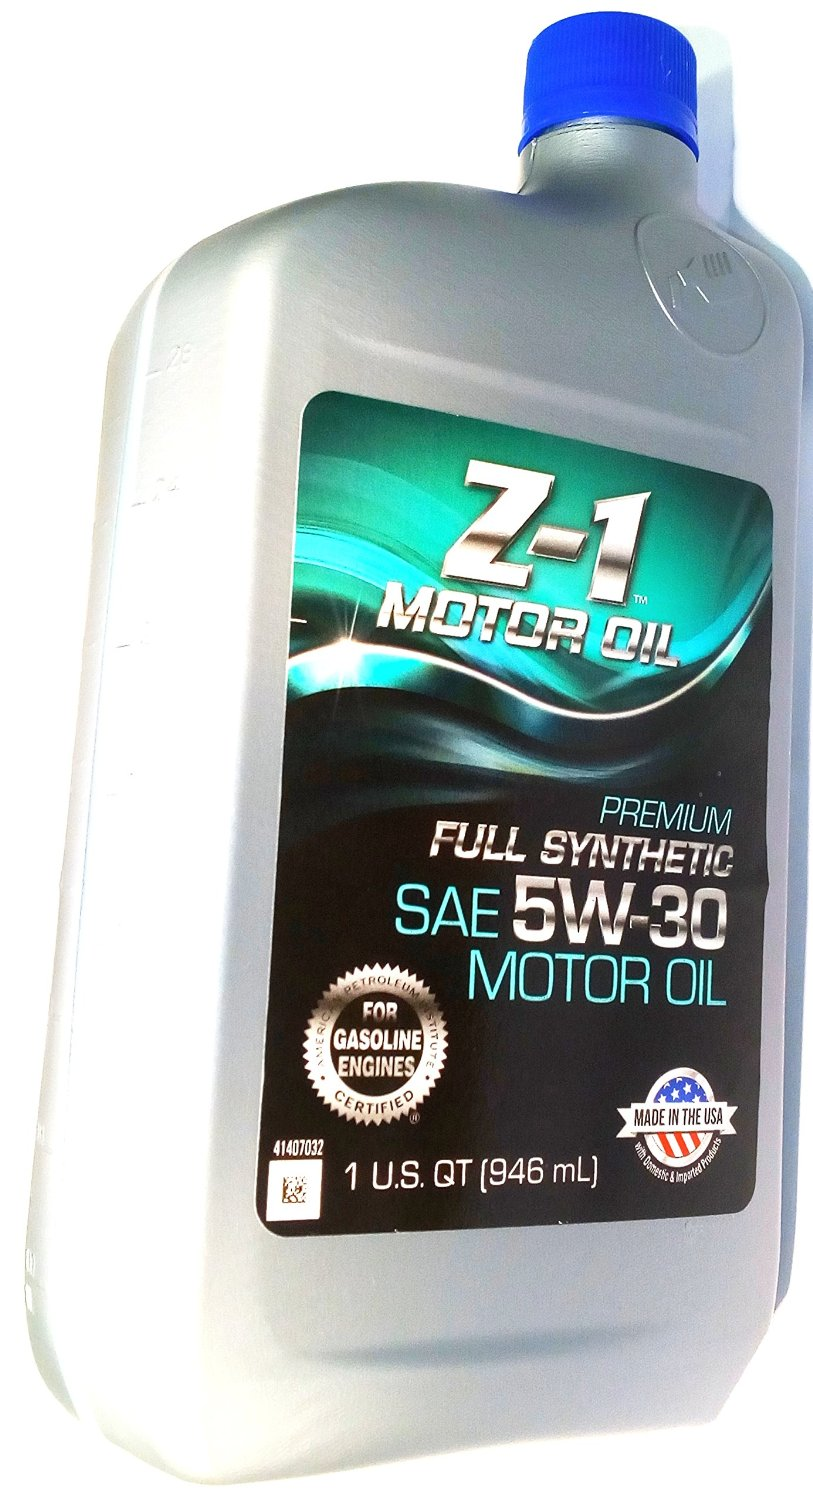 Genuine Z-1 Certified - Premium Full Synthetic Gasolines Engine Oil - SAE 5W-30 - Advanced Wear Protection- (1 U.S. Quart/946 mL) - Bottle